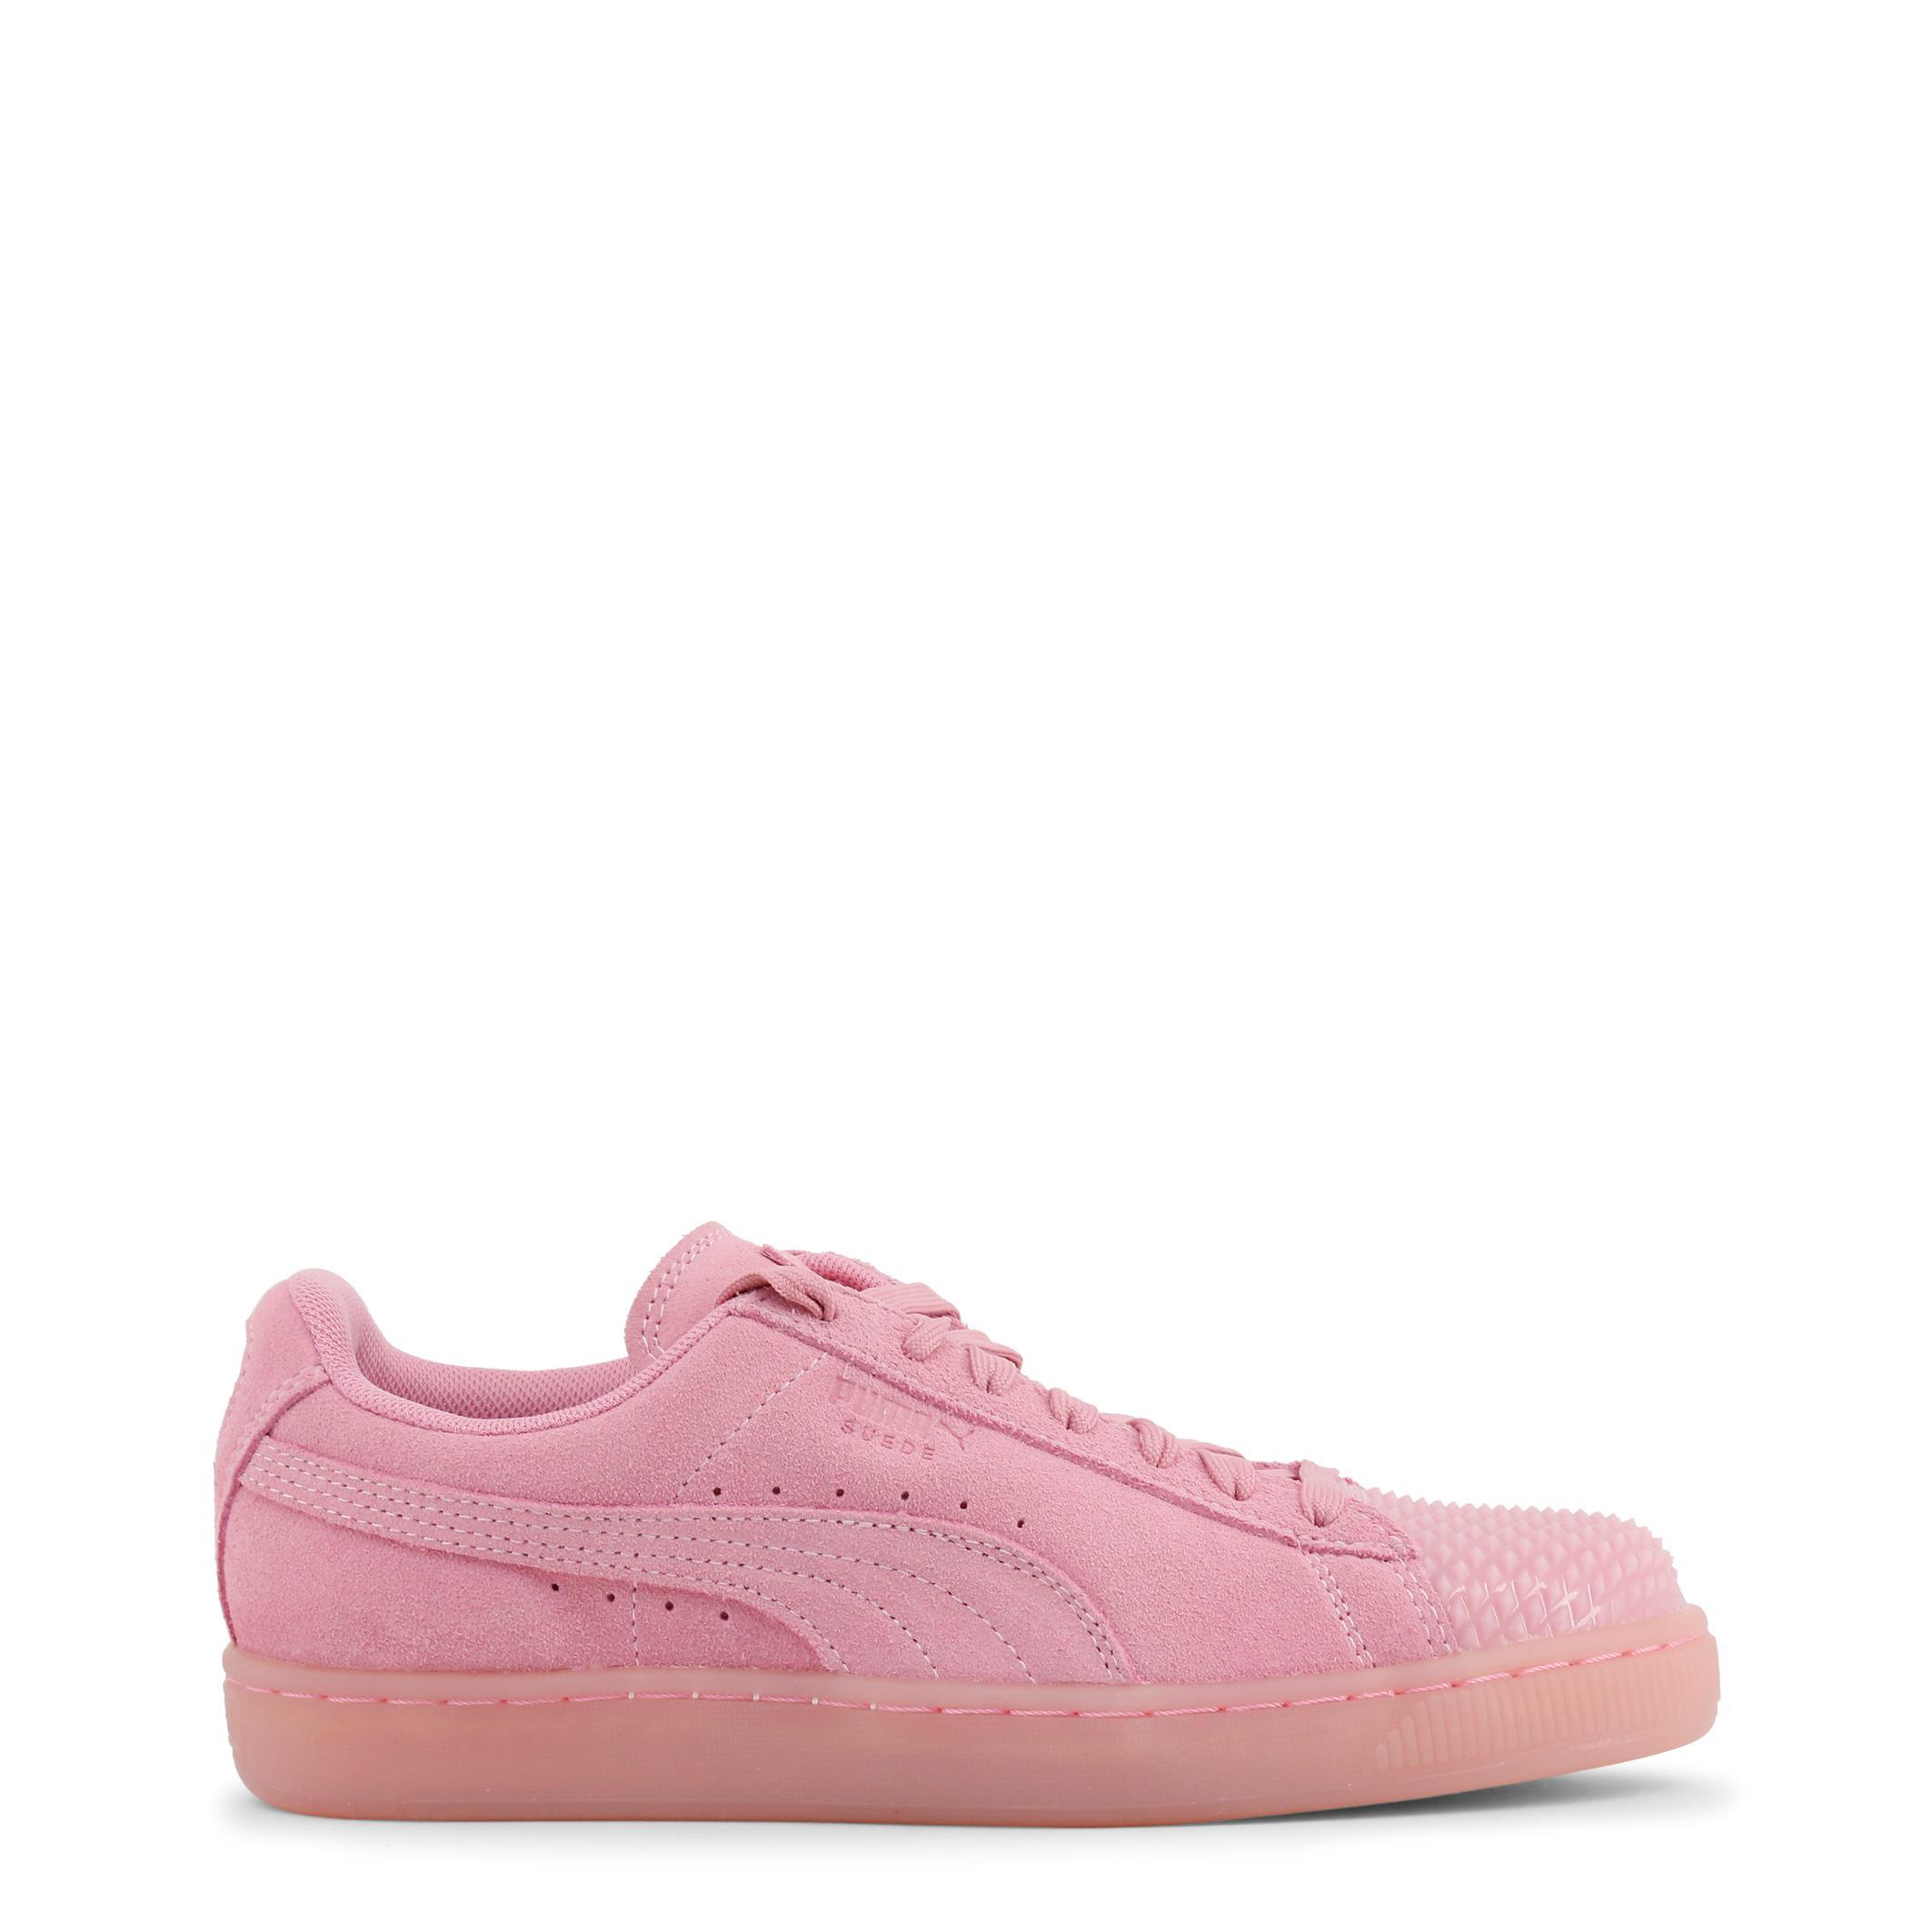 new concept caa83 05649 ... New Puma Suede Jelly 365859 Women s Trainers Shoes Shoes Shoes Sneakers  f665b5 ...